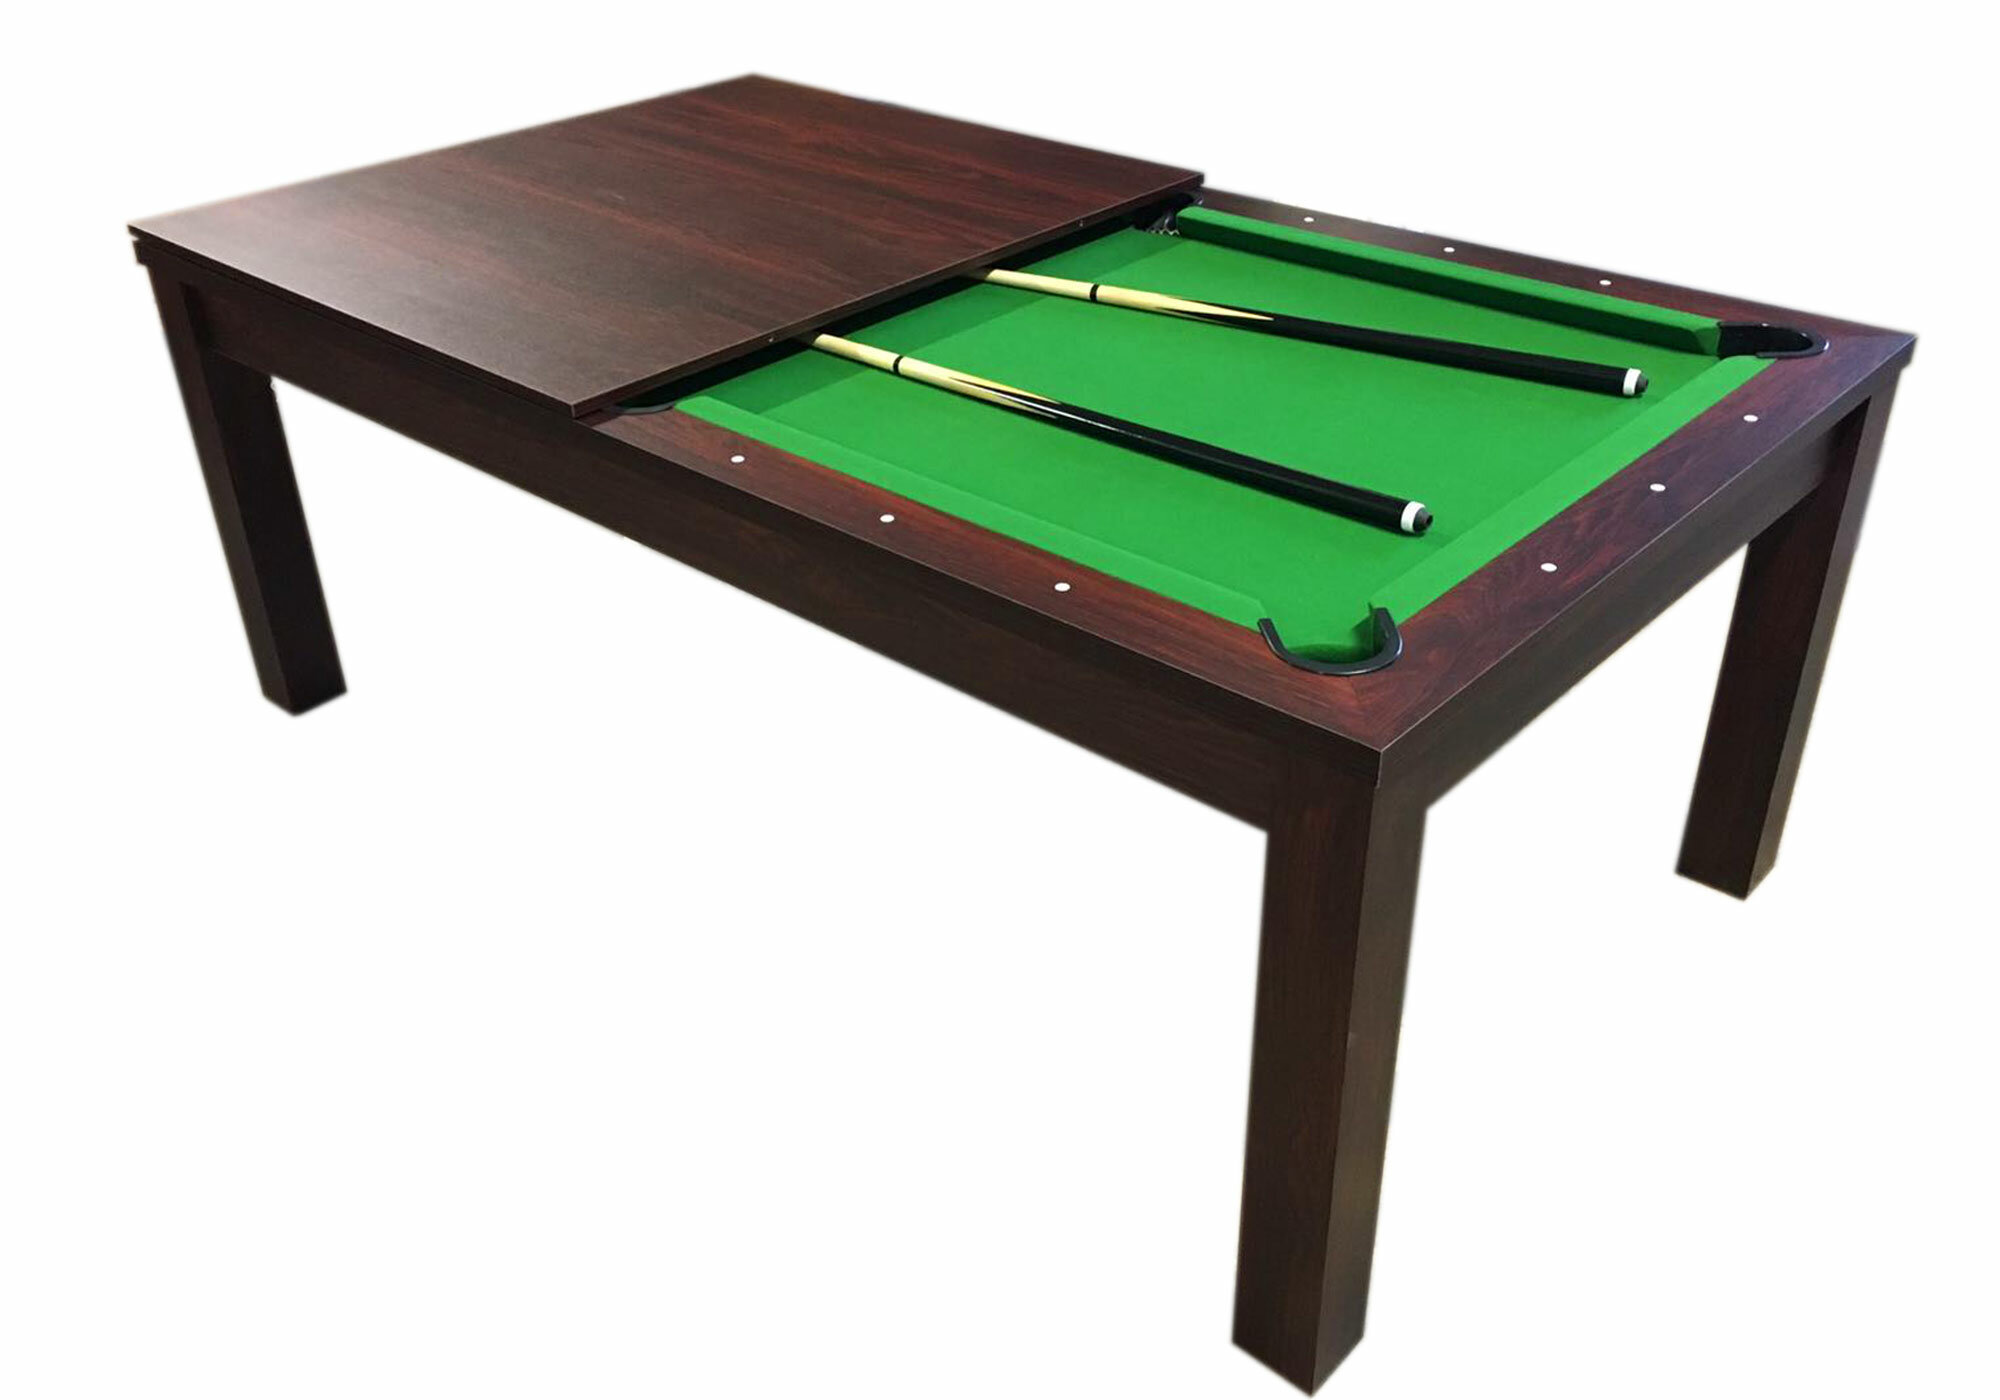 Simba USA Missisipi Model Snooker Full Accessories Pool Table